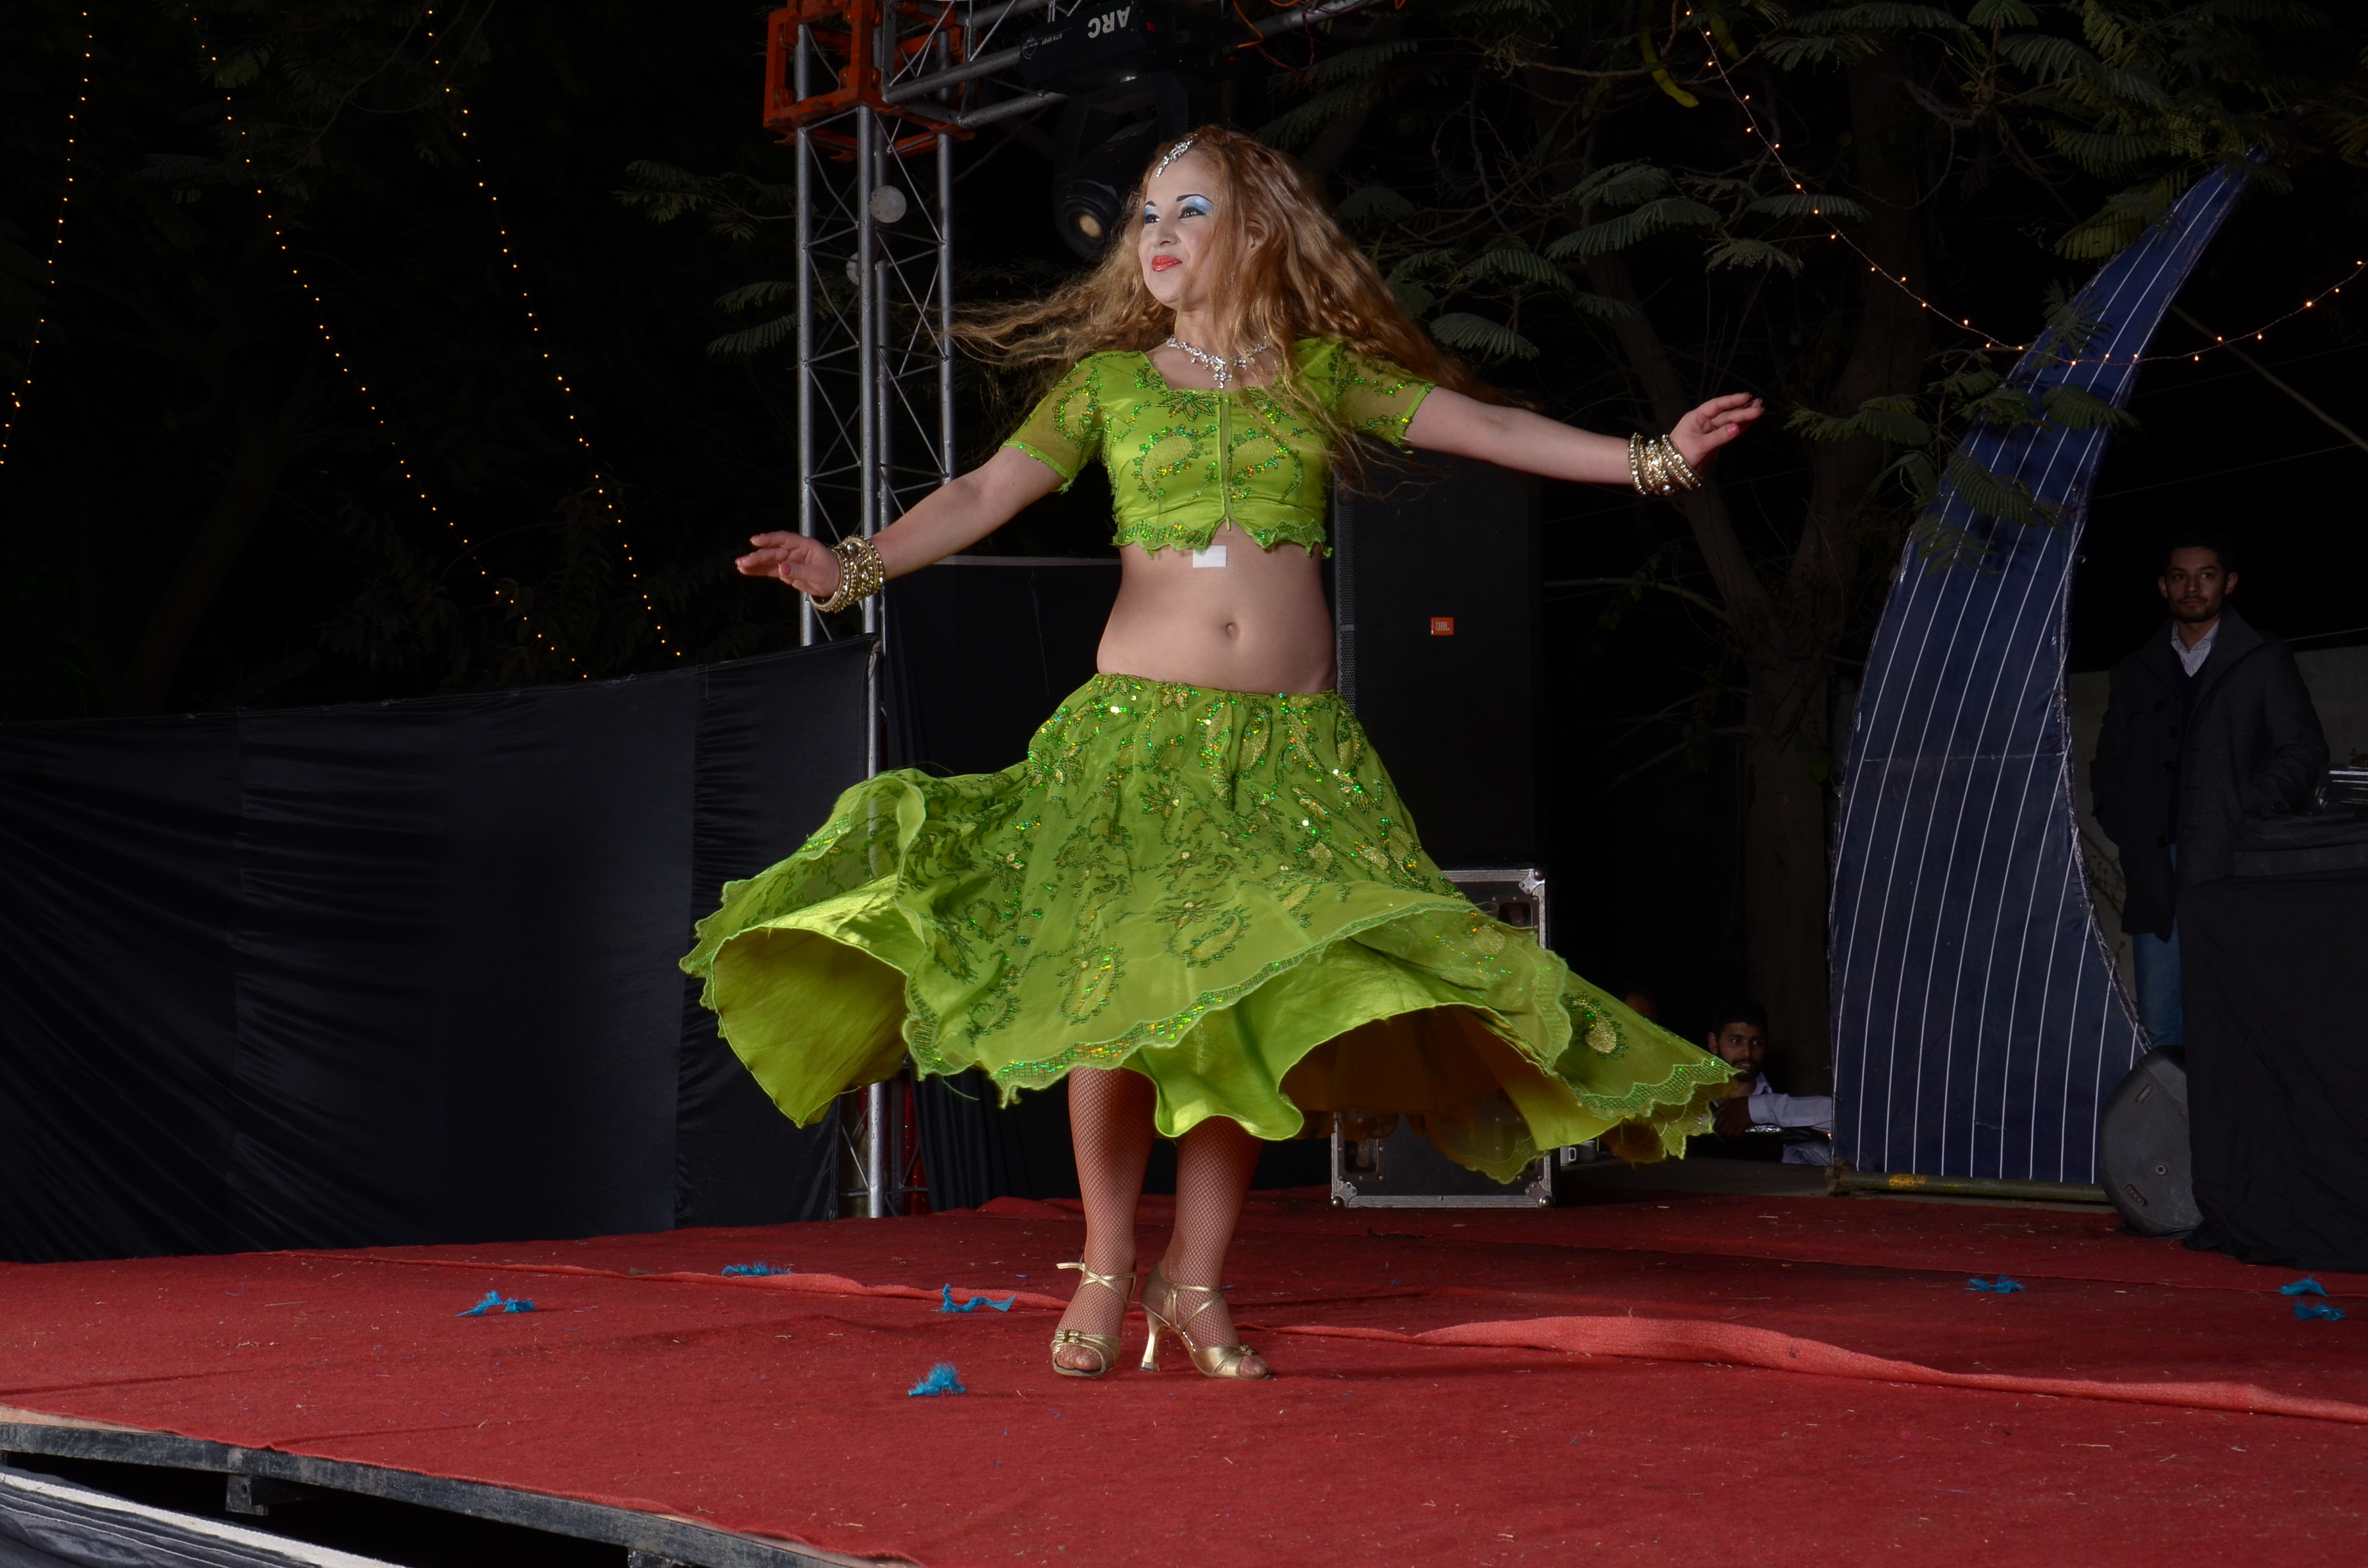 Images Dancing Girl File:dancing Girl in Marriage